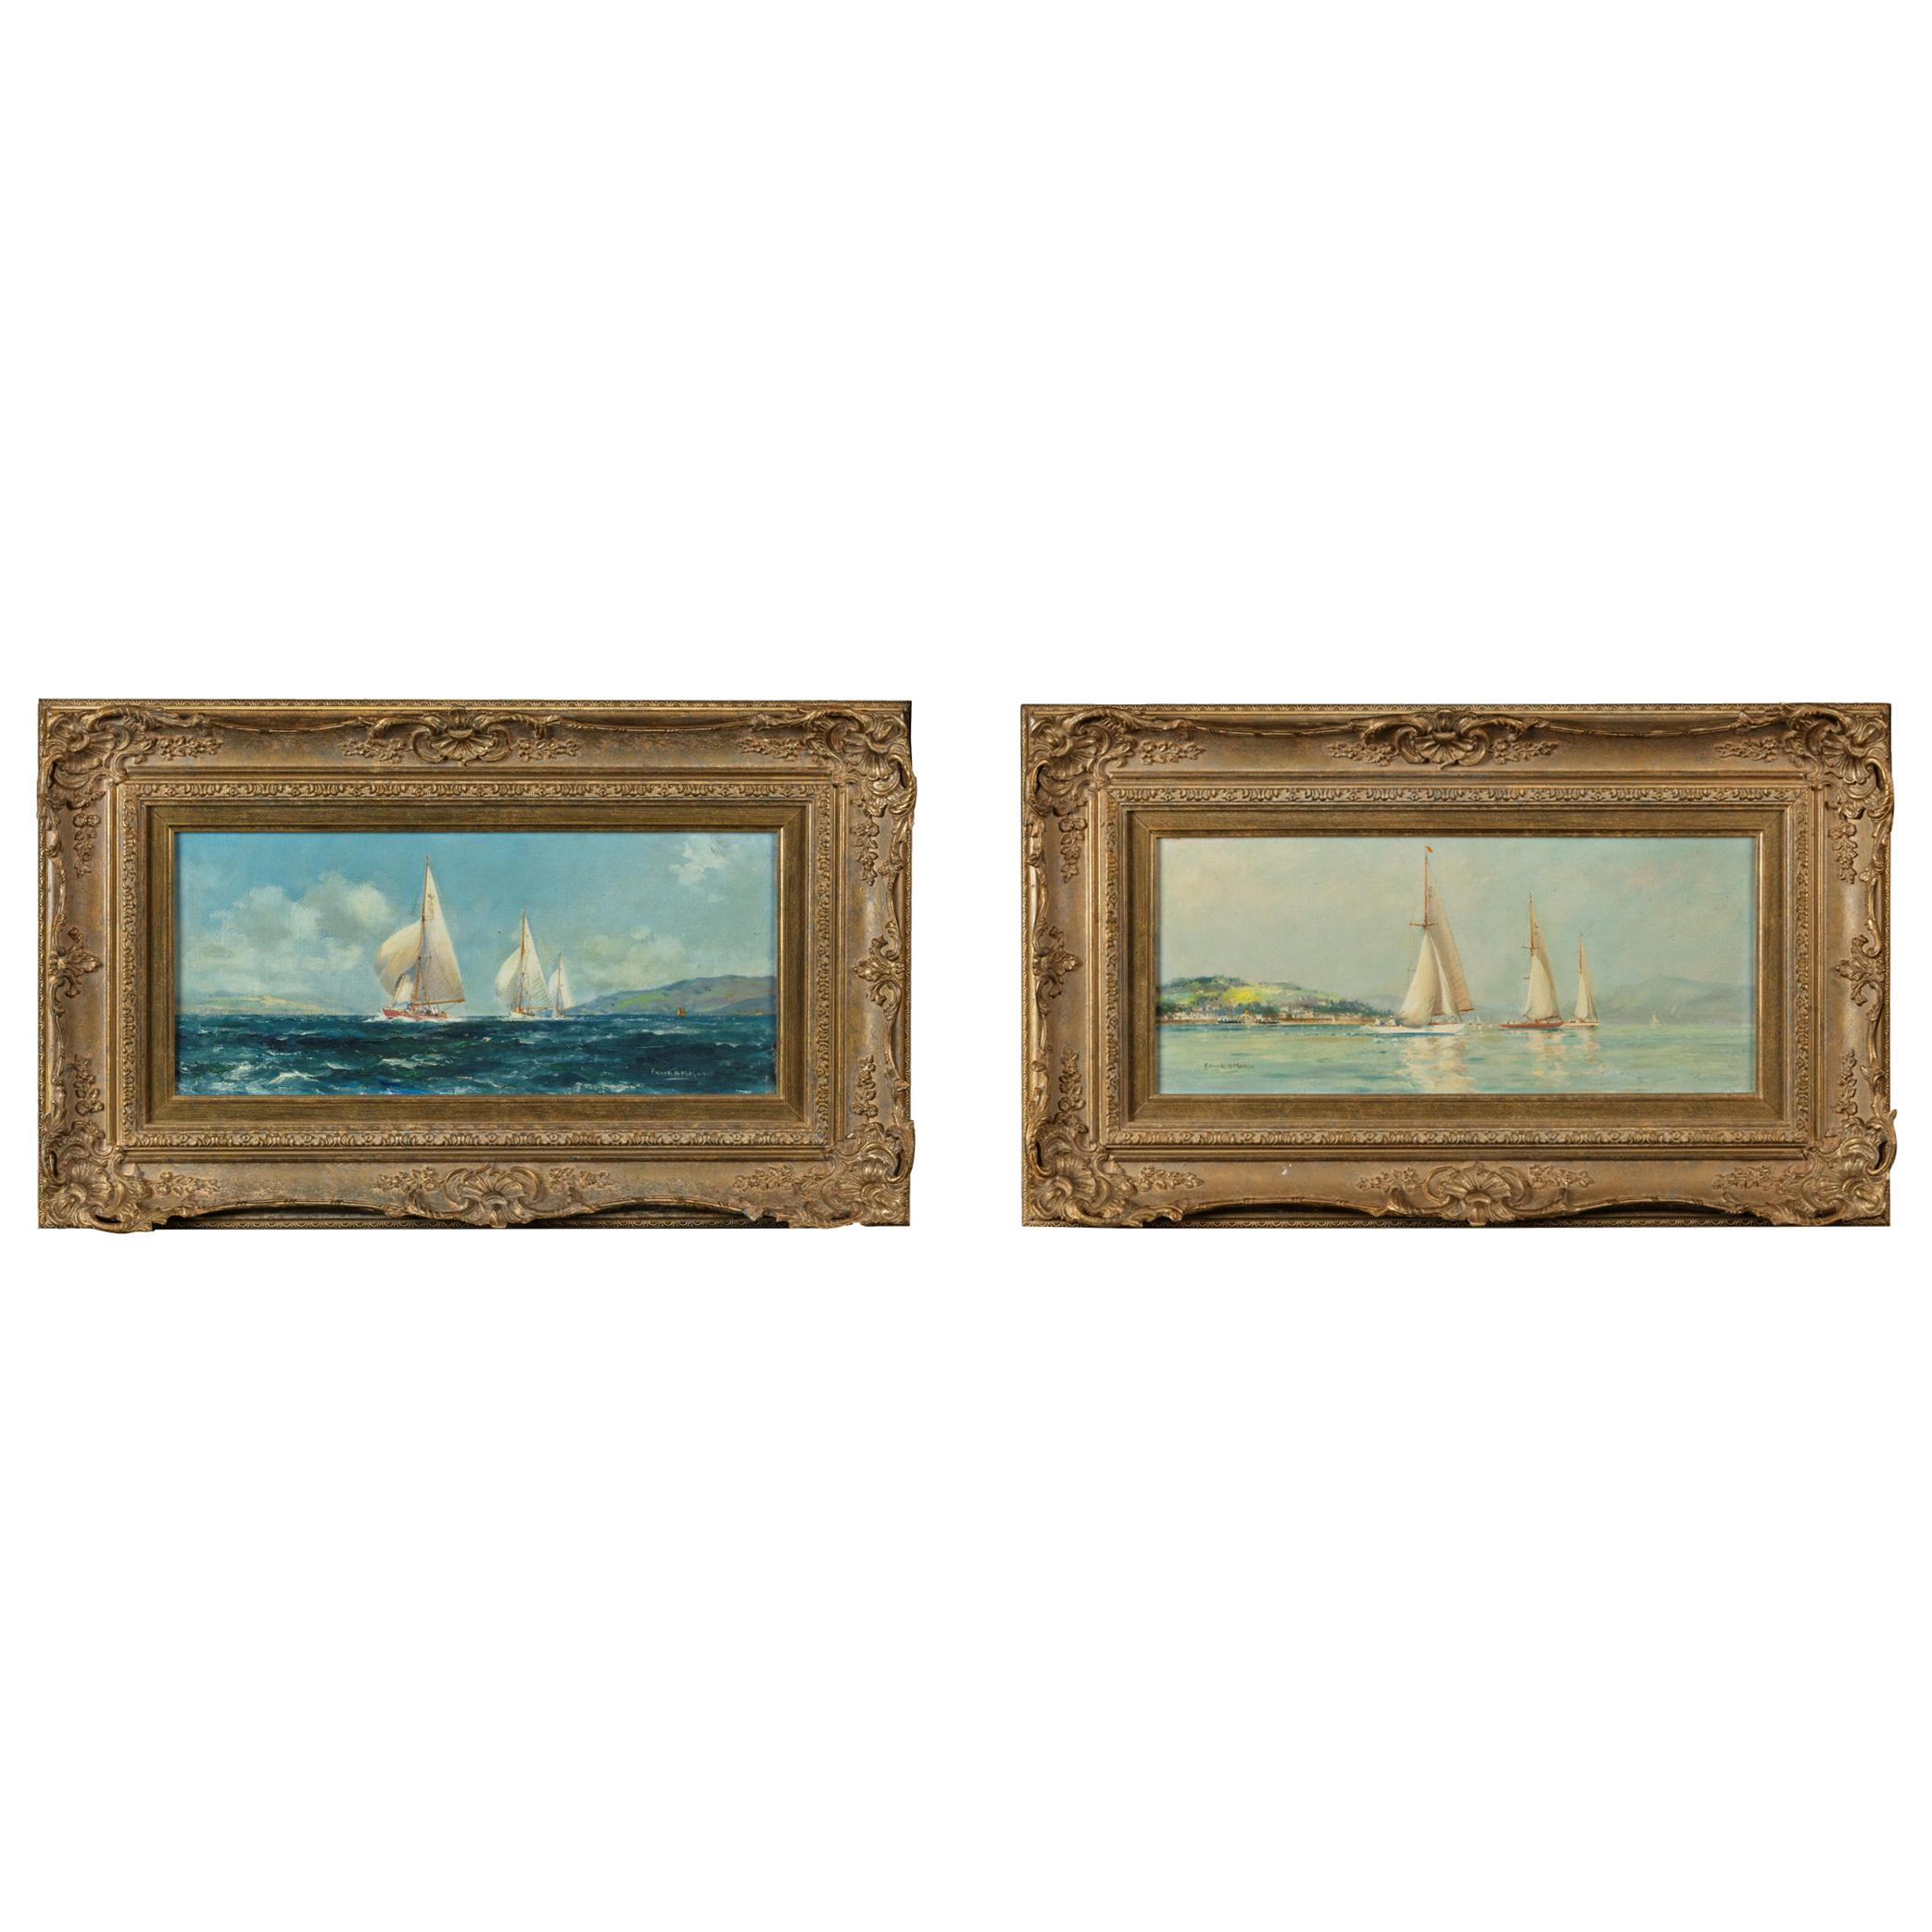 Pair of Oil Paintings of Clyde One Design Yachts Racing by Frank Henry Mason